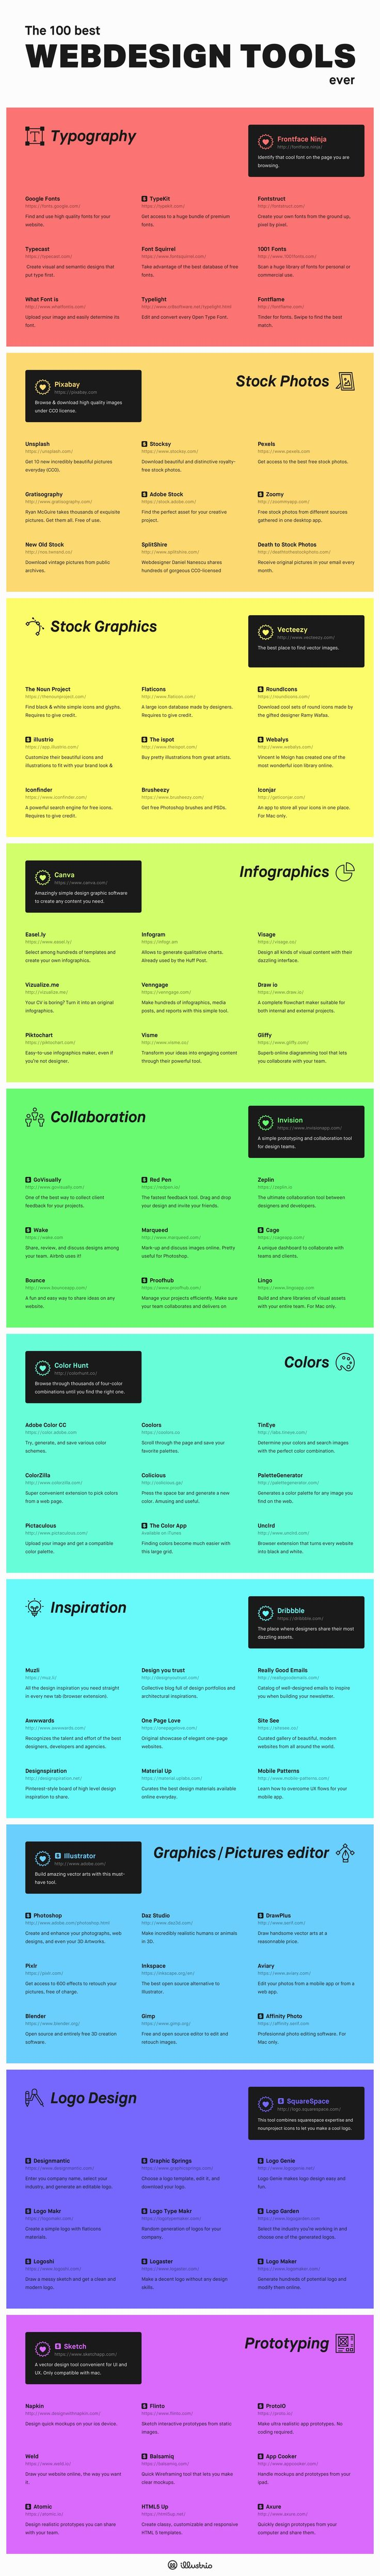 This graphic is probably one of the best resource list put together for web designers, including typography, stock photos, stock graphics, infographics, collaboration, colors, inspiration, graphics…